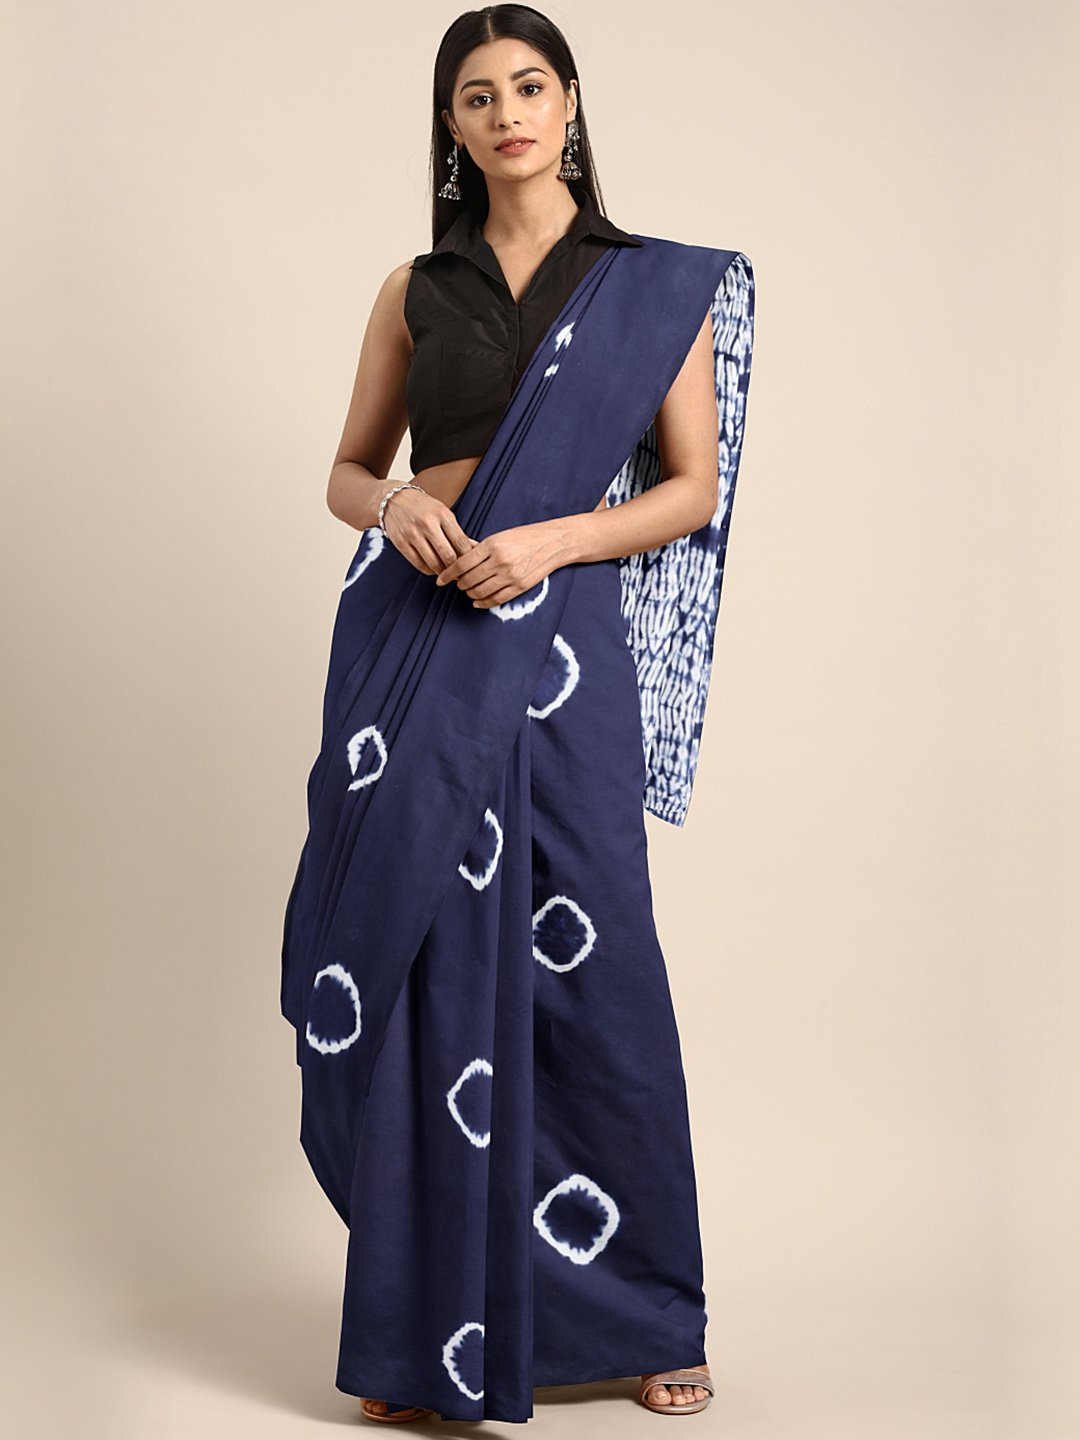 Indigo Dyed Saree Shibori Tie & Dyed Handcrafted Cotton Saree-Saree-Kalakari India-BHKPSA0039-Cotton, Geographical Indication, Hand Blocks, Hand Crafted, Heritage Prints, Sarees, Shibori, Sustainable Fabrics-[Linen,Ethnic,wear,Fashionista,Handloom,Handicraft,Indigo,blockprint,block,print,Cotton,Chanderi,Blue, latest,classy,party,bollywood,trendy,summer,style,traditional,formal,elegant,unique,style,hand,block,print, dabu,booti,gift,present,glamorous,affordable,collectible,Sari,Saree,printed, holi